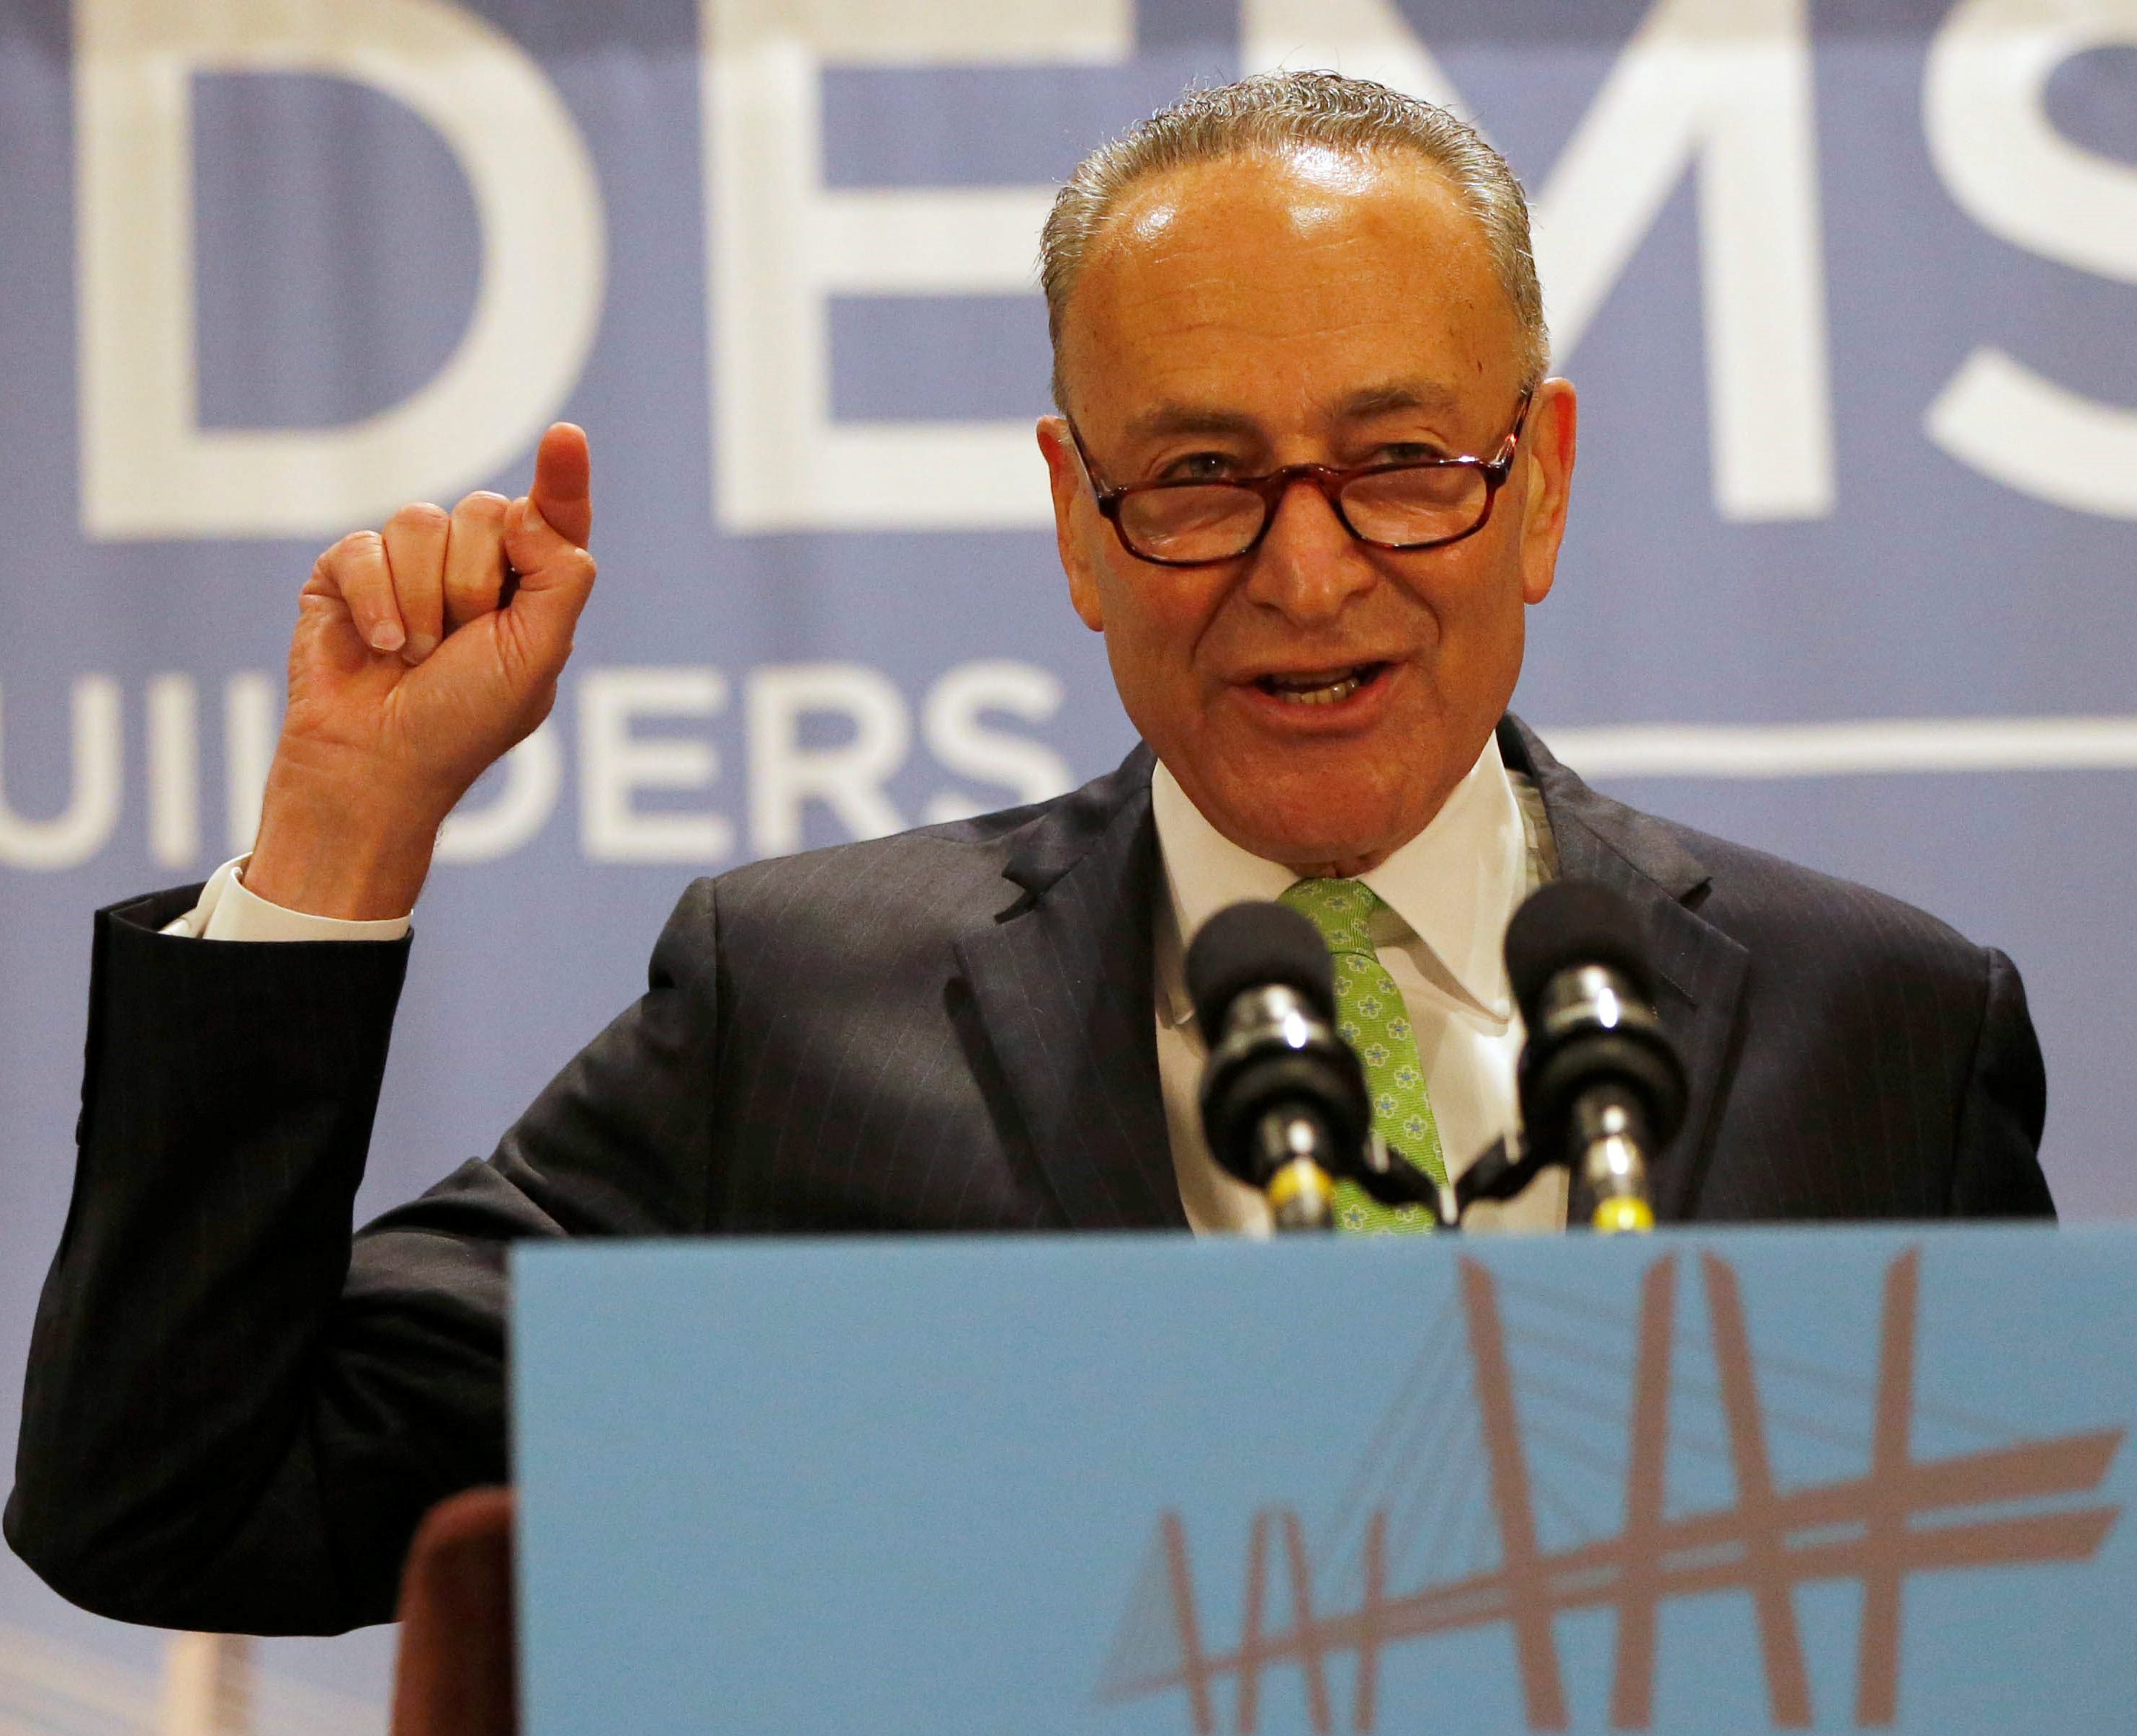 Sen. Charles Schumer has been a strong advocate for Western New York. Derek Gee/Buffalo news file photo)